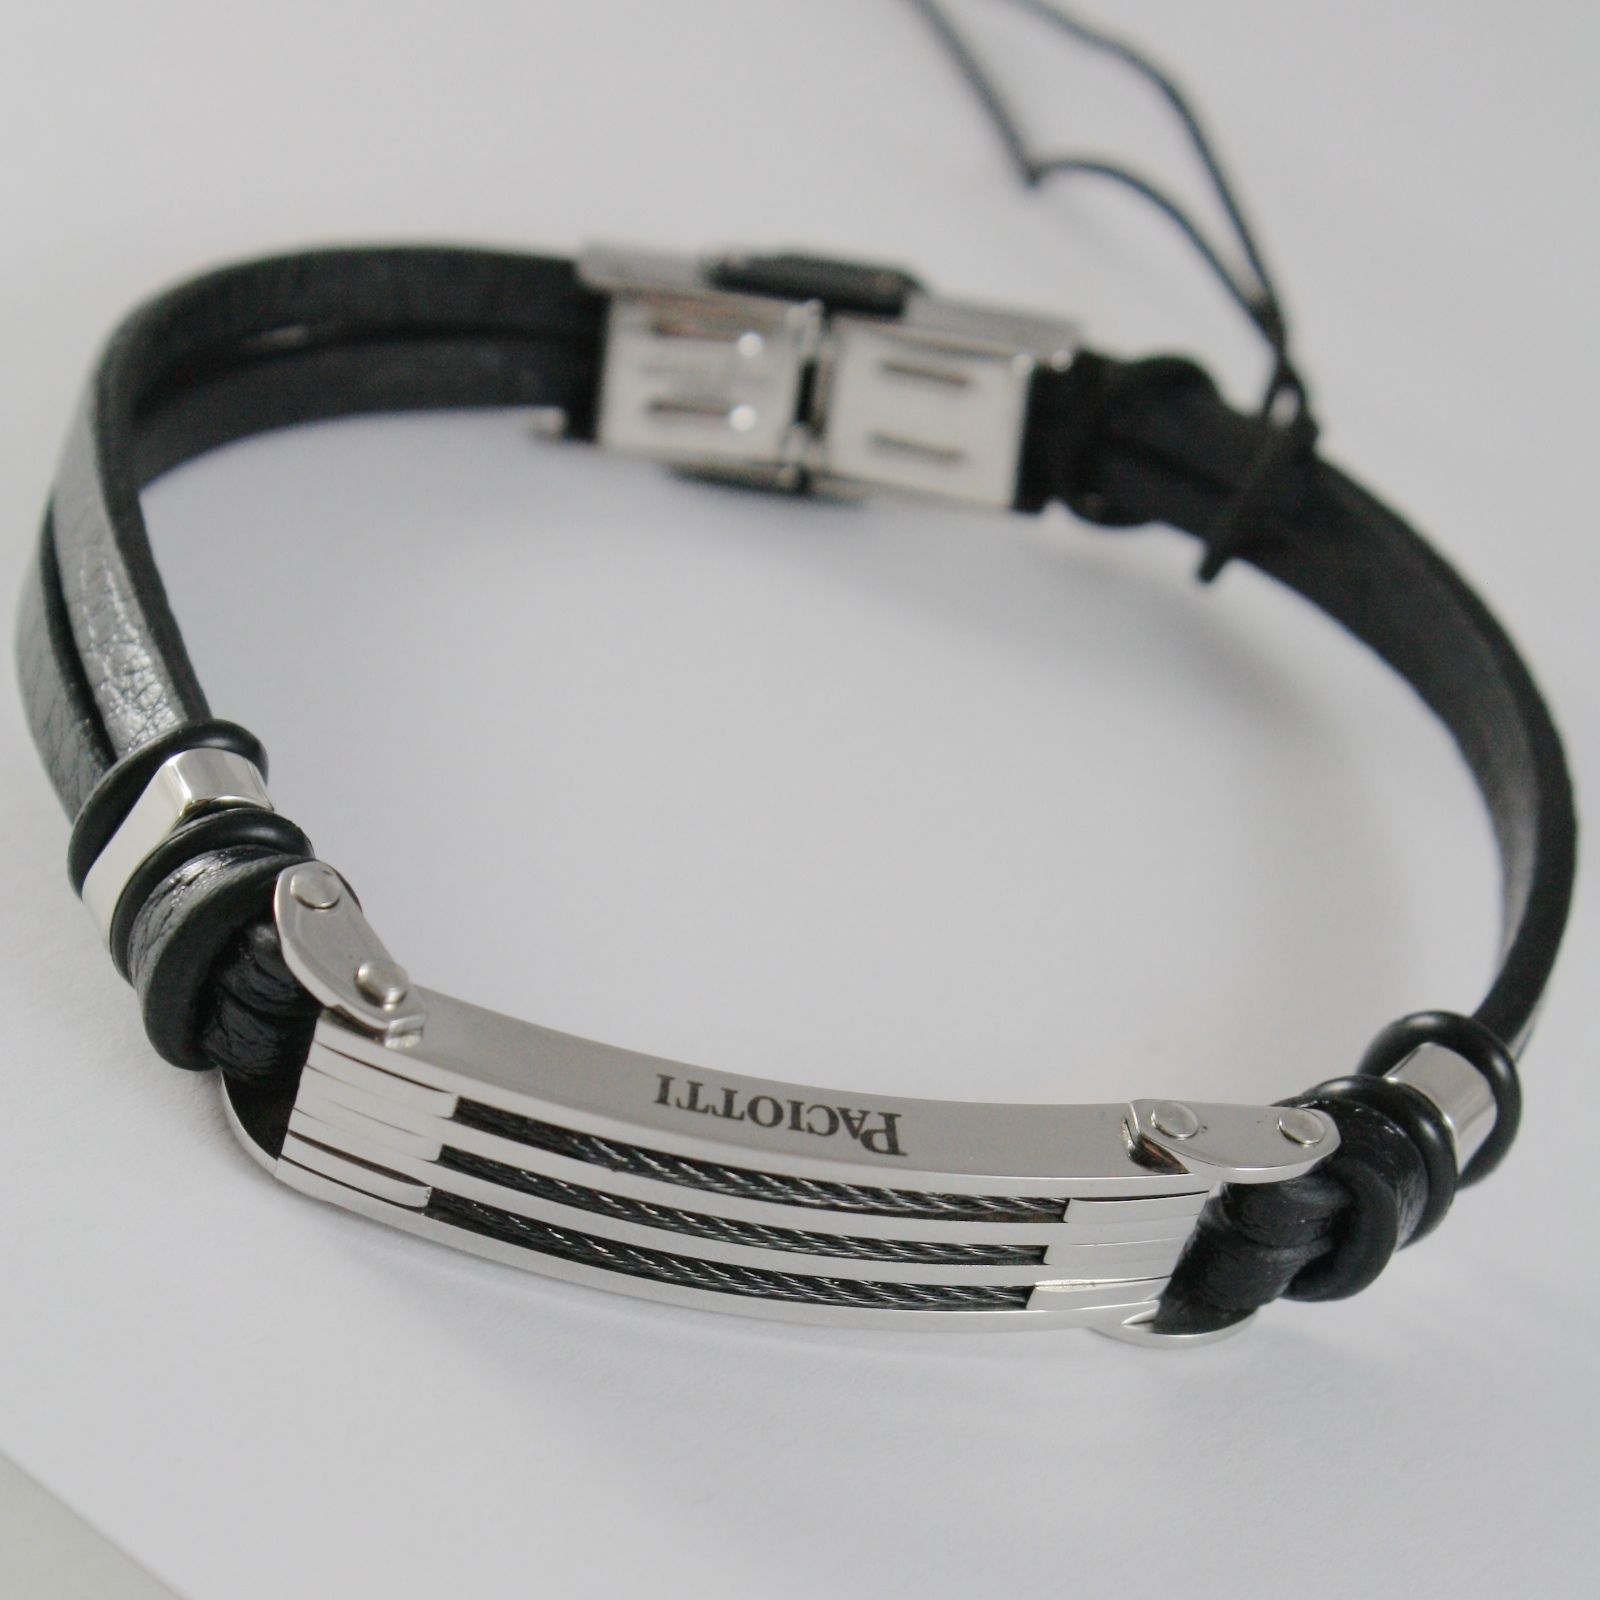 STAINLESS STEEL BRACELET WITH CABLE PLATE LEATHER BAND, 4US BY CESARE PACIOTTI